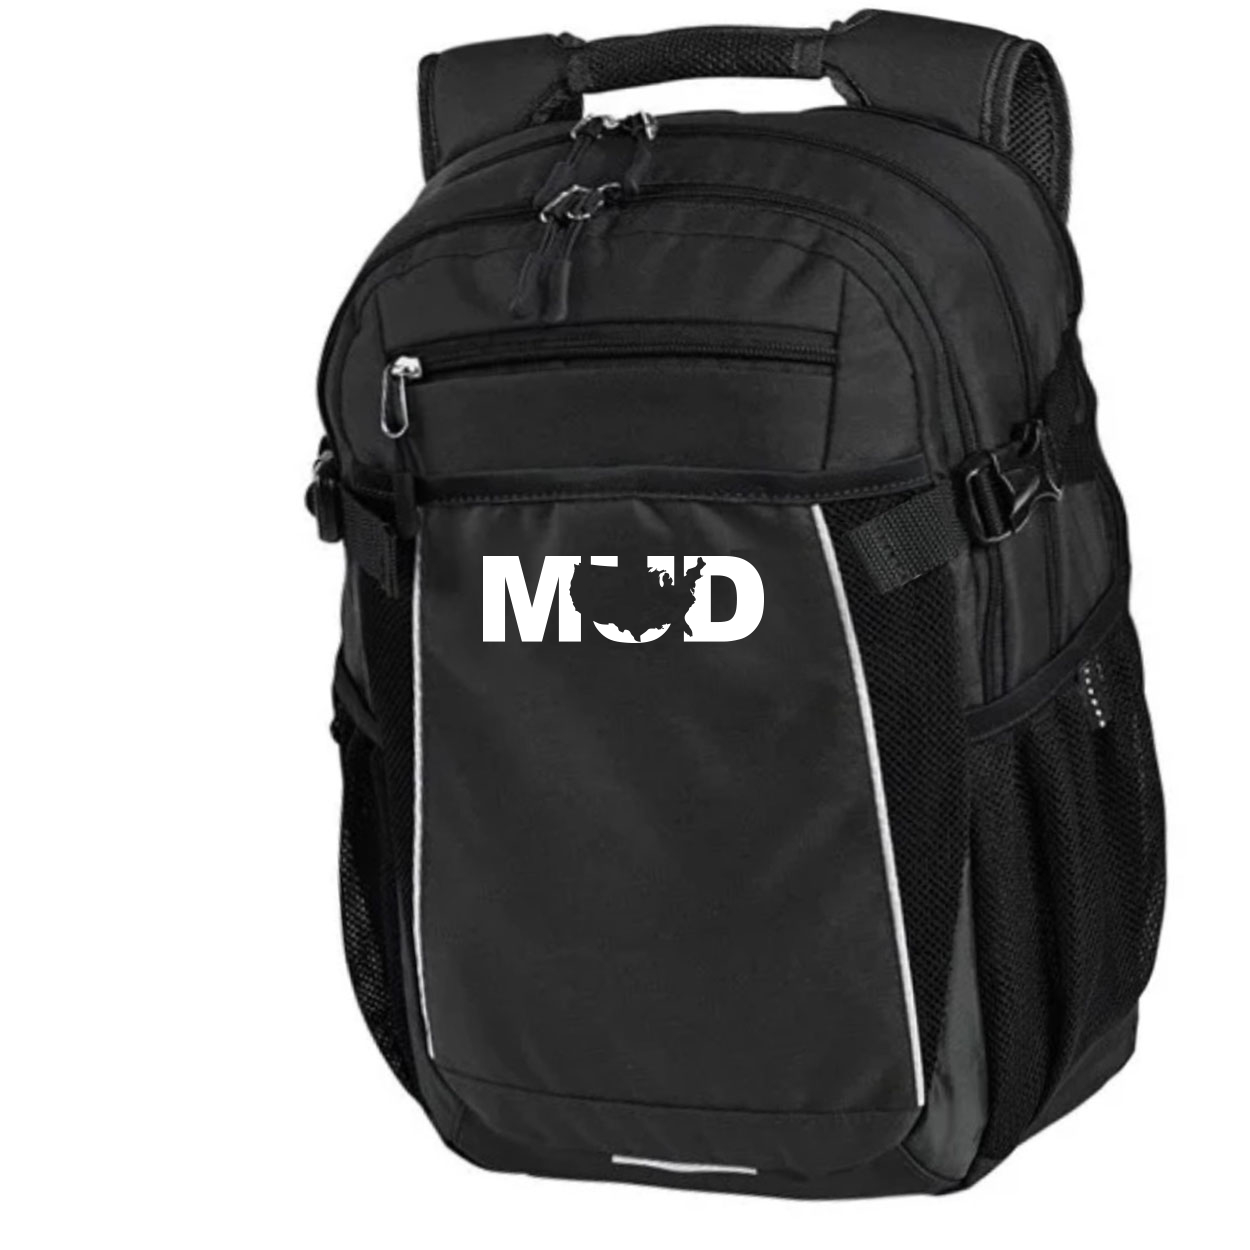 Mud United States Classic Pro Pioneer Backpack Black (White Logo)